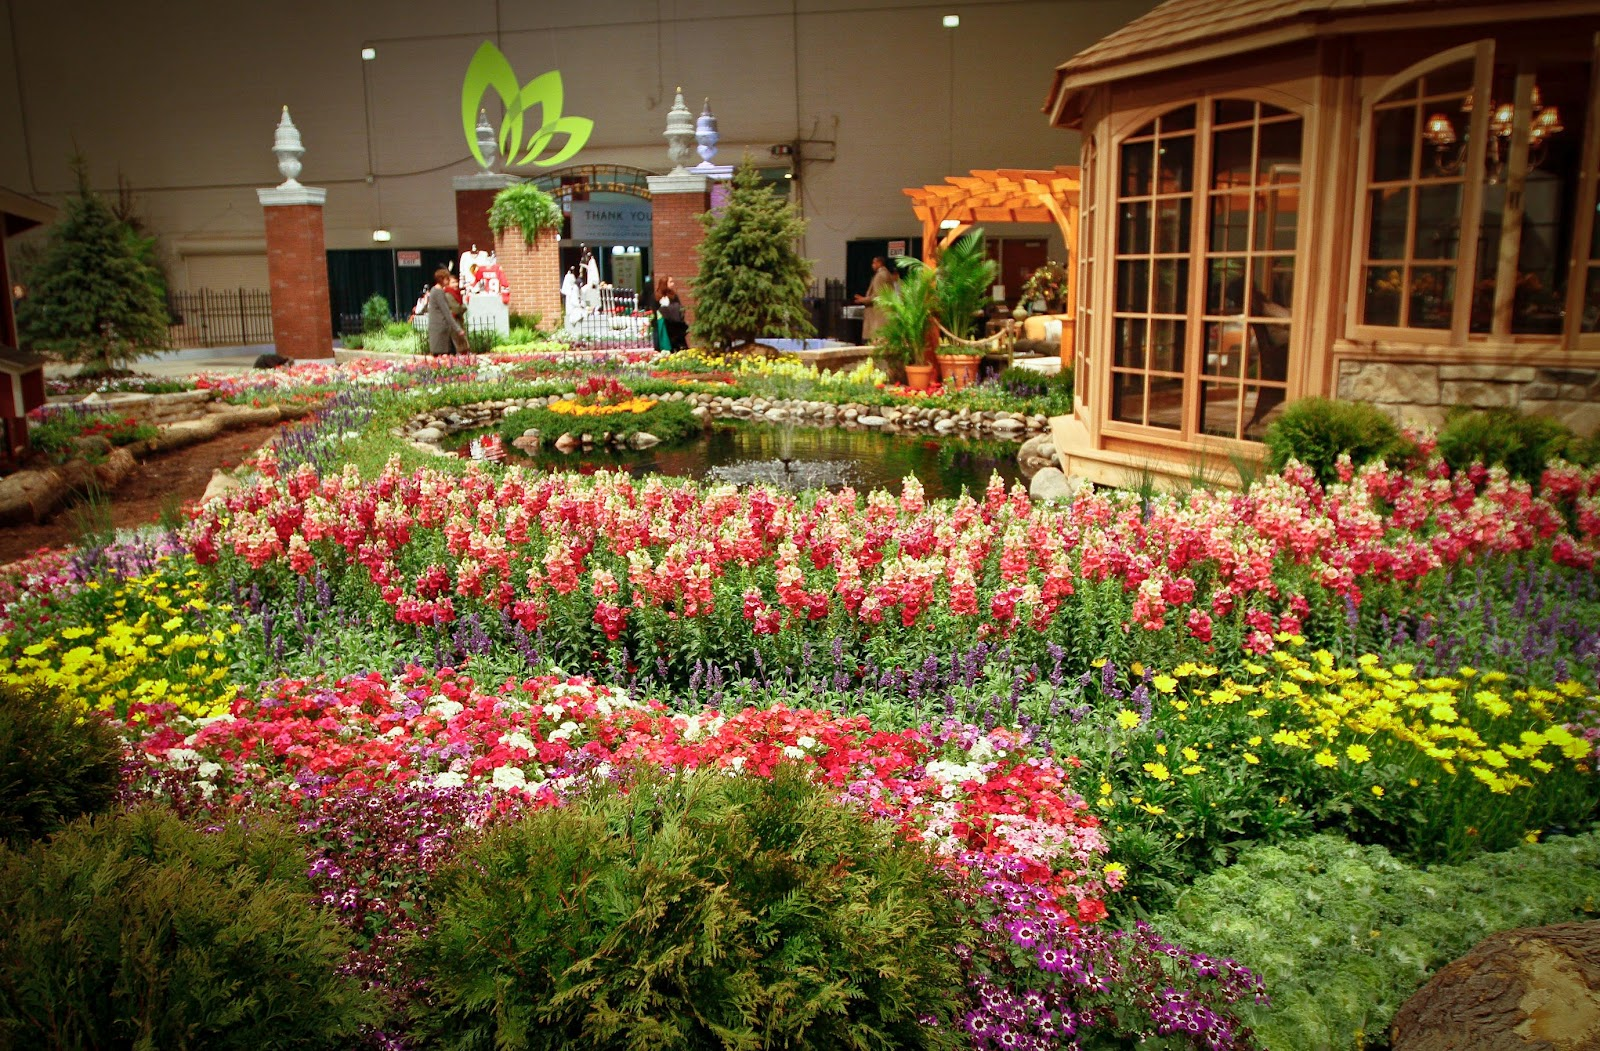 Family time magazine february 2012 for Chicago flower and garden show